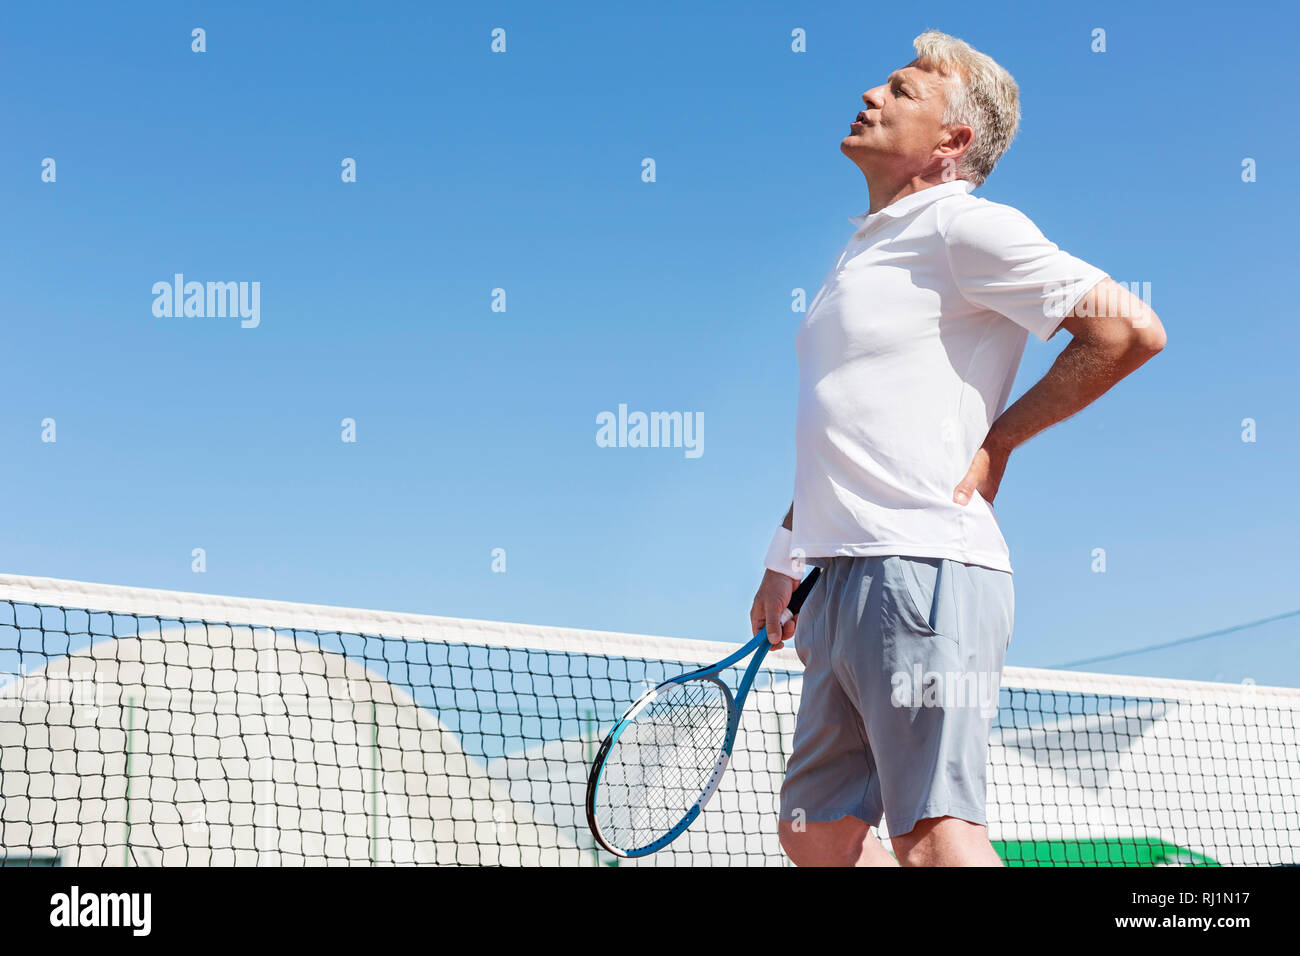 Mature man grimacing with backache while holding tennis racket against clear blue sky on sunny day - Stock Image